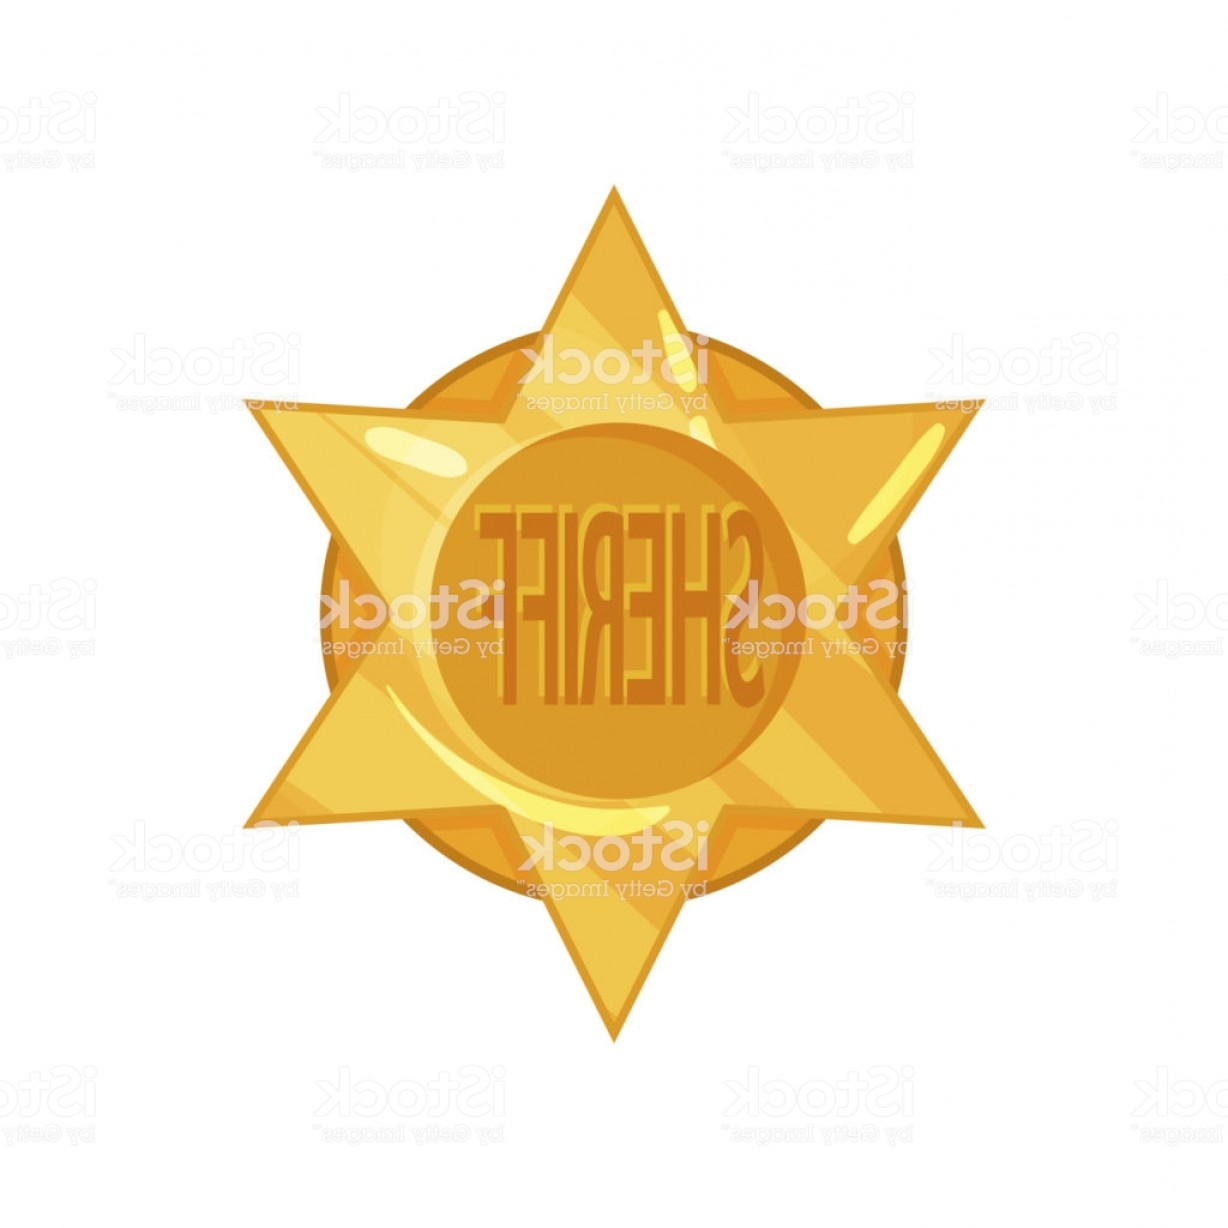 Star Badge Vector: Old West Police Golden Circle Star Badge In Cartoon Flat Style Vector Sheriff Emblem Gm